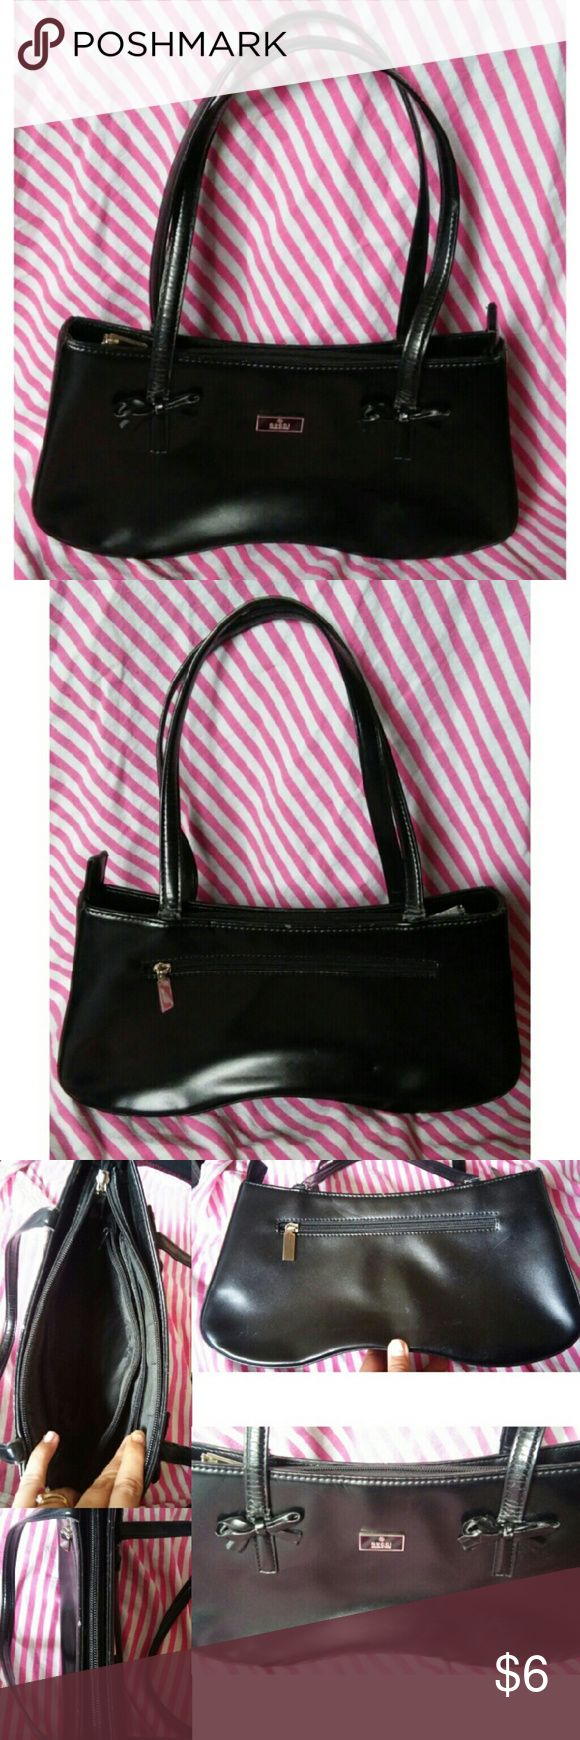 Black Replica handbag with bows Replica handbag  Black with bows  THIS BAG IS NOT REAL! REPEAT FAKE! THE BAG IS FAKE!  it is an inspired Gucci handbag  There are knicks, scuffs which are pictured.  The straps are wearing harshly.  I tried to picture all the flaws to give a better idea of condition of bag.  The interior is in good condition, lots of storage room for the size of the bag. Bags Shoulder Bags